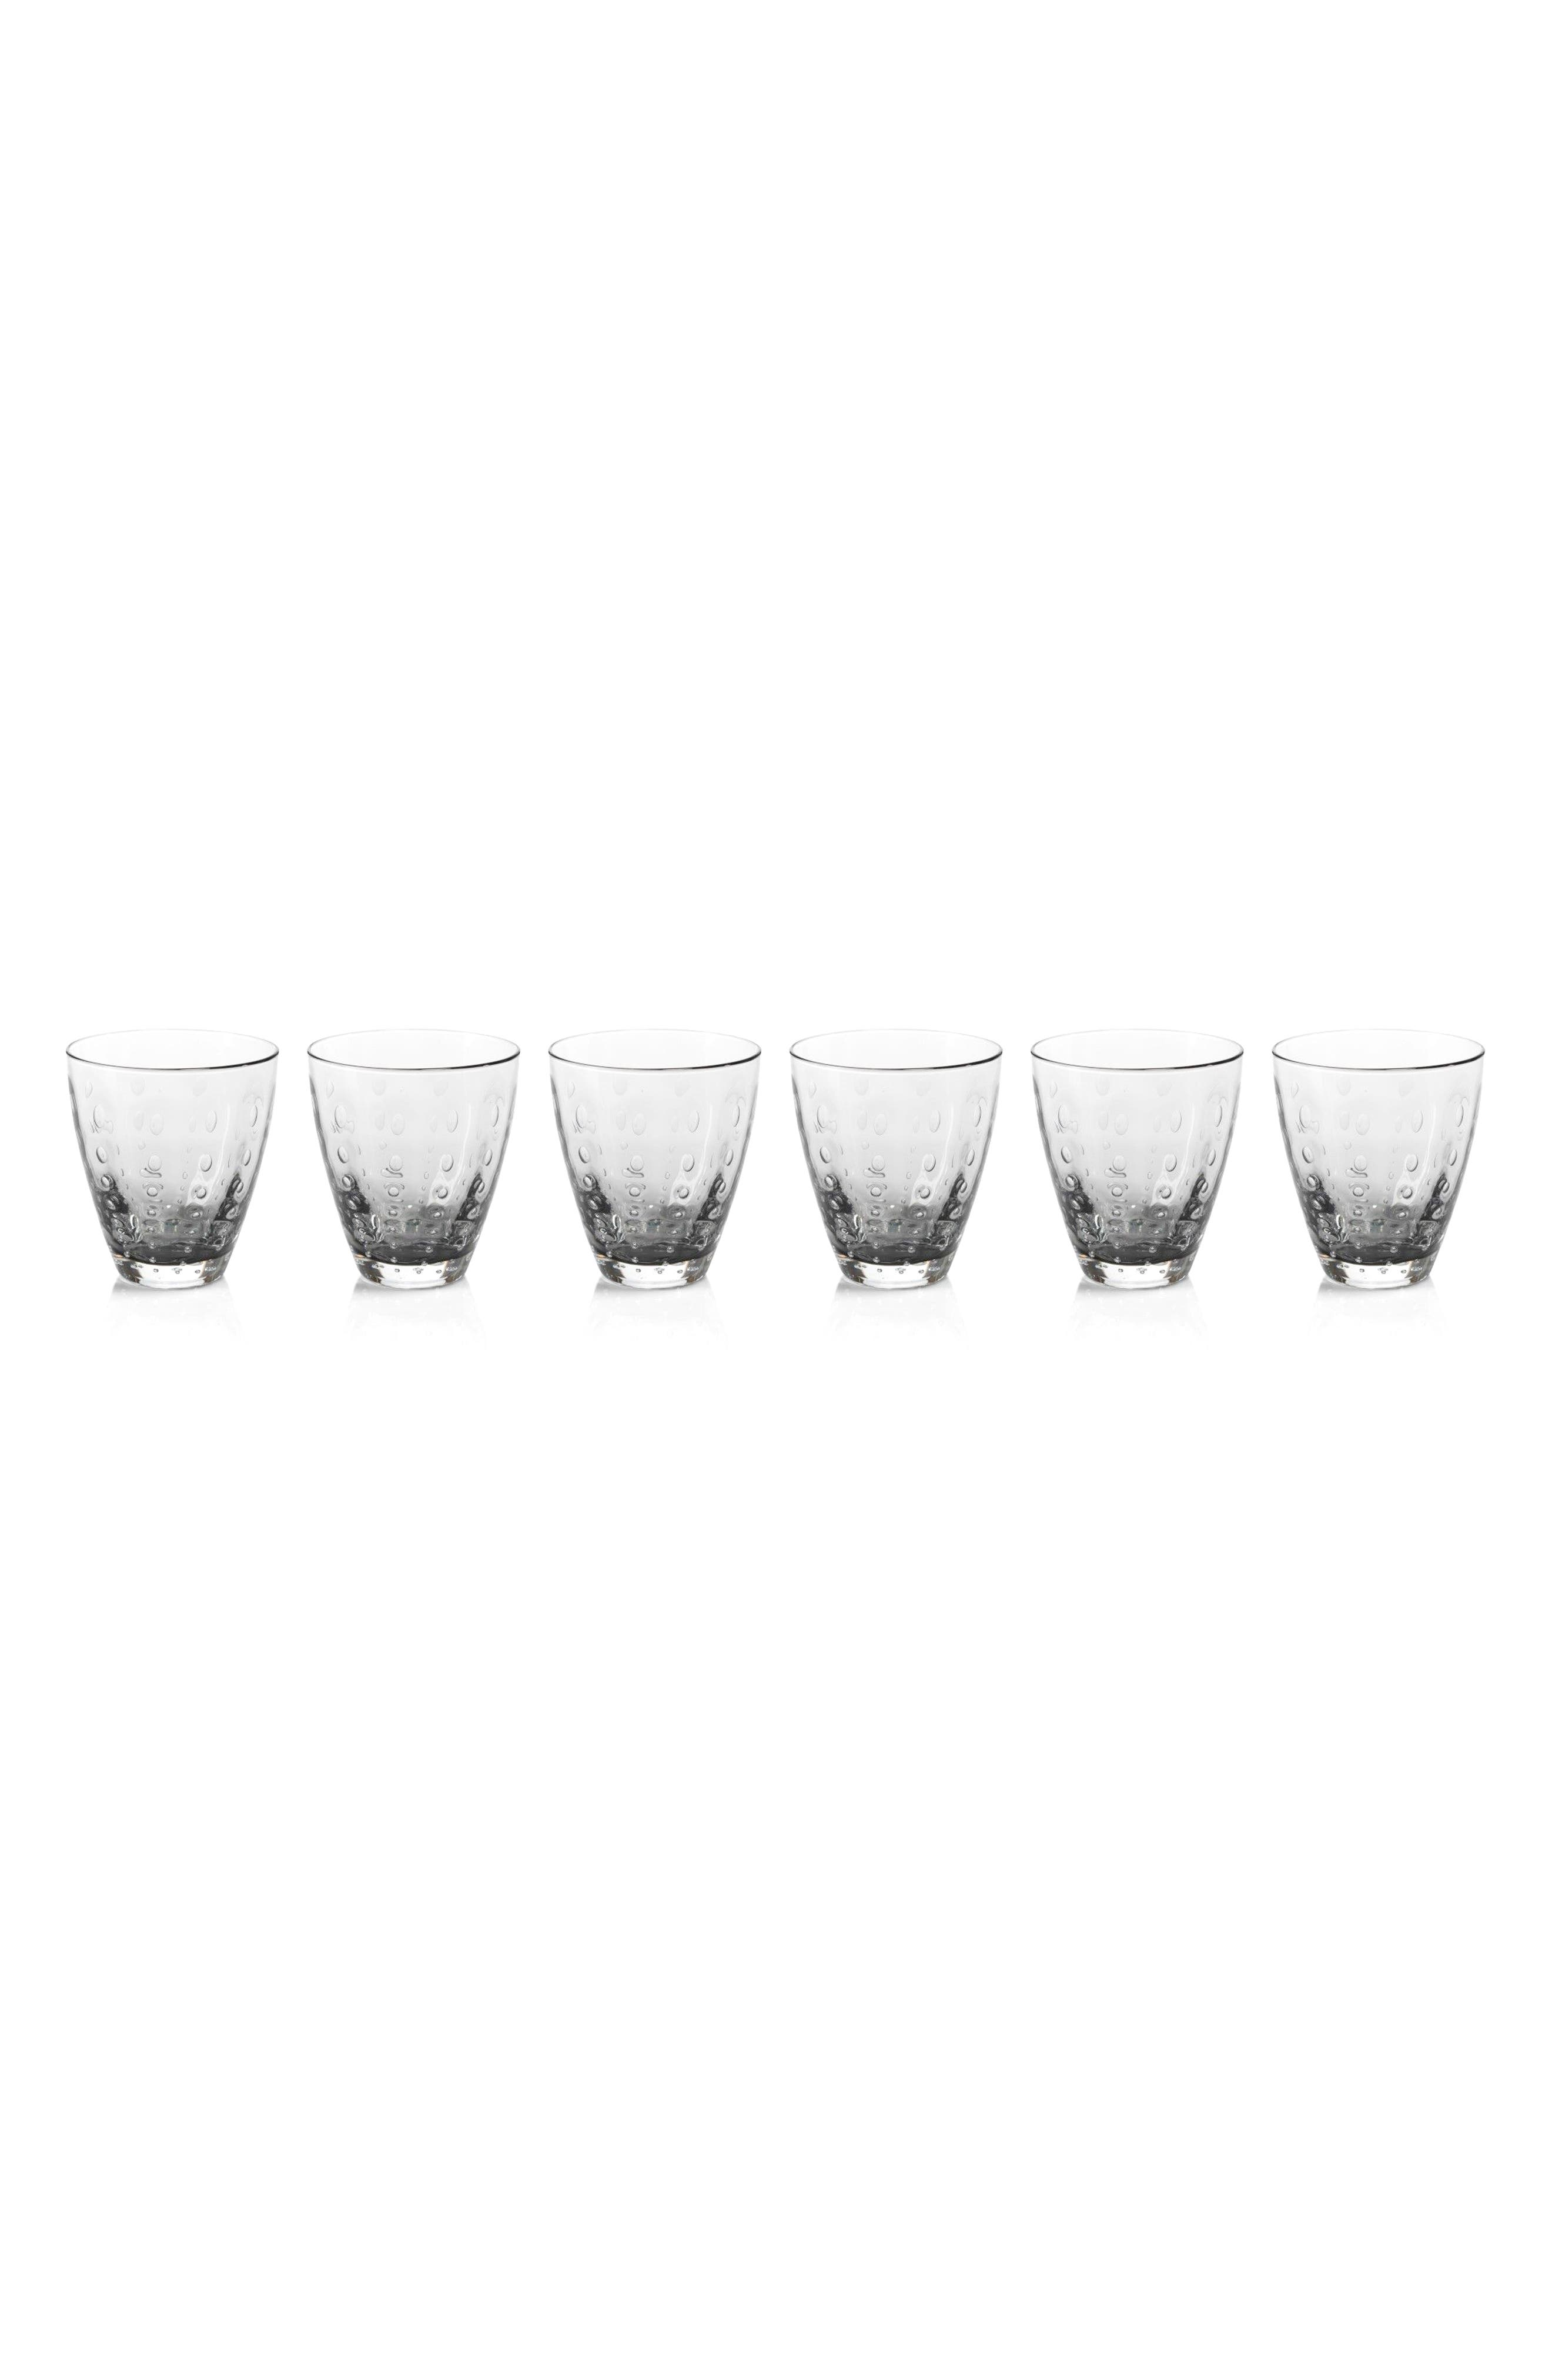 Bubbled Set of 6 Double Old Fashioned Glasses,                             Main thumbnail 1, color,                             100